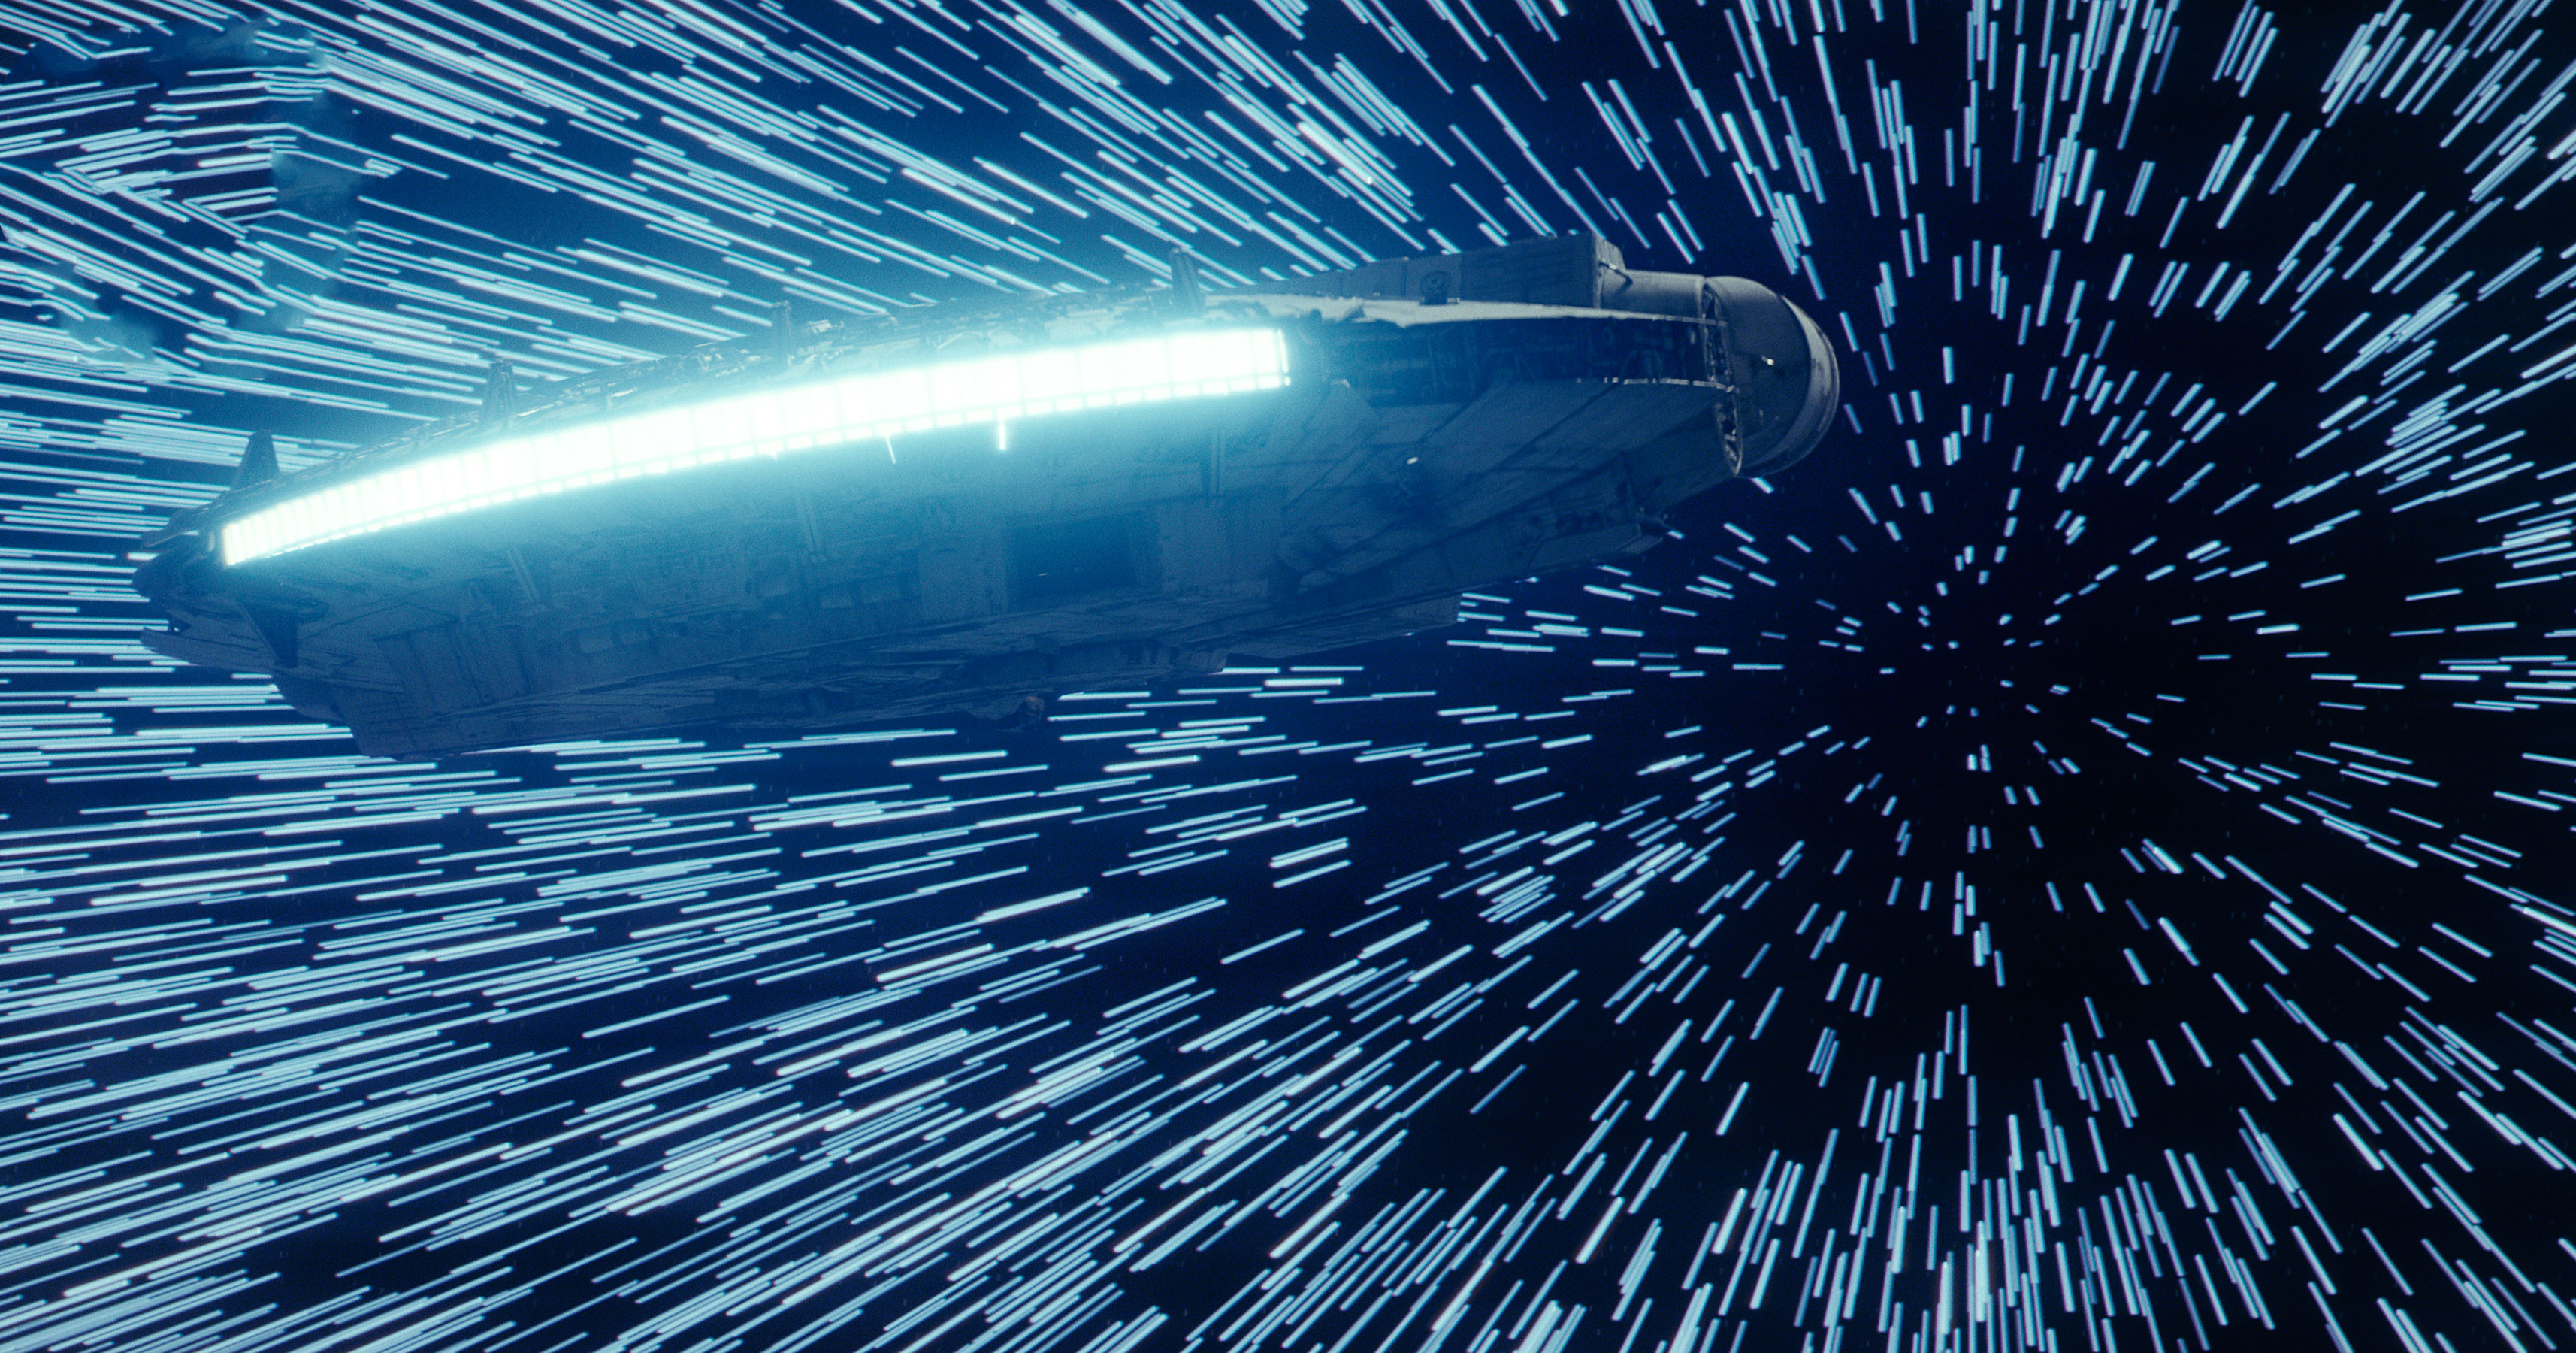 star wars the last jedi millennium falcon hitting lightspeed, hd